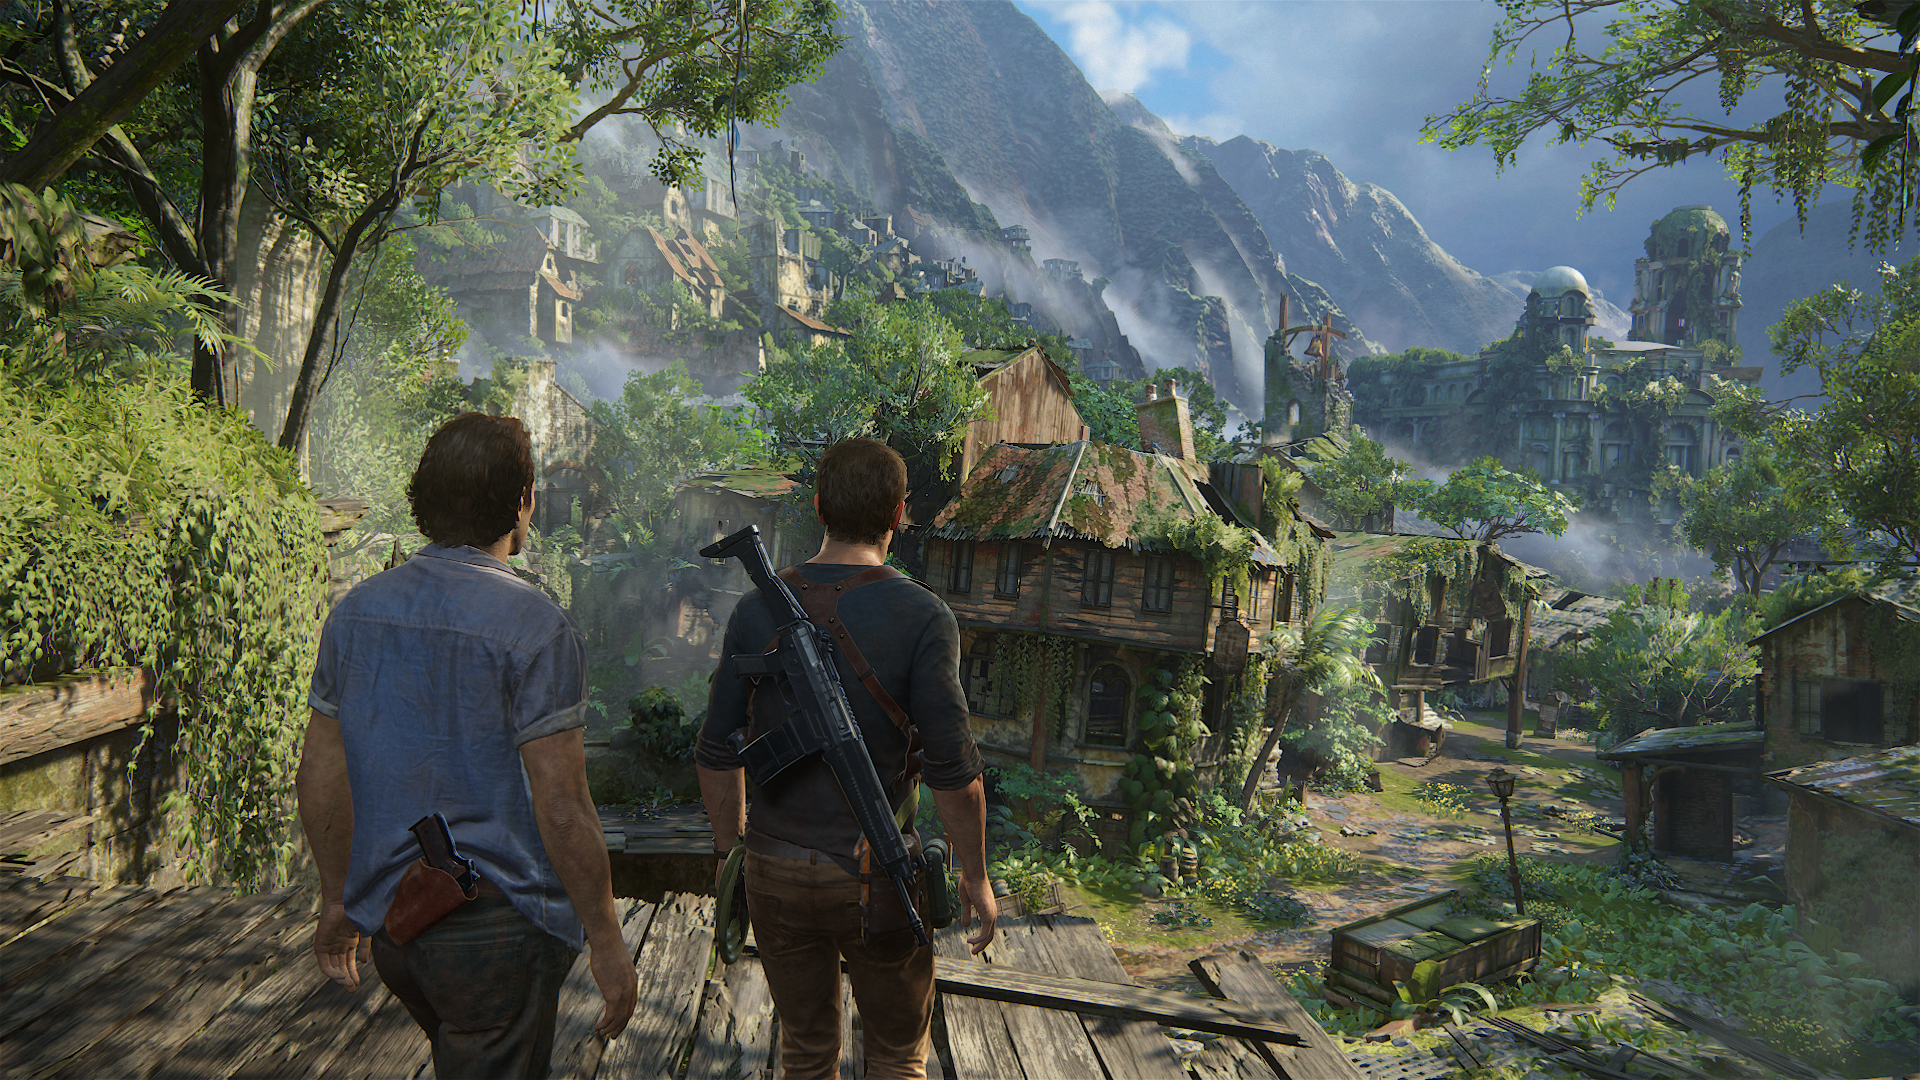 Uncharted 4 Treasures Location Guide Where To Find Every